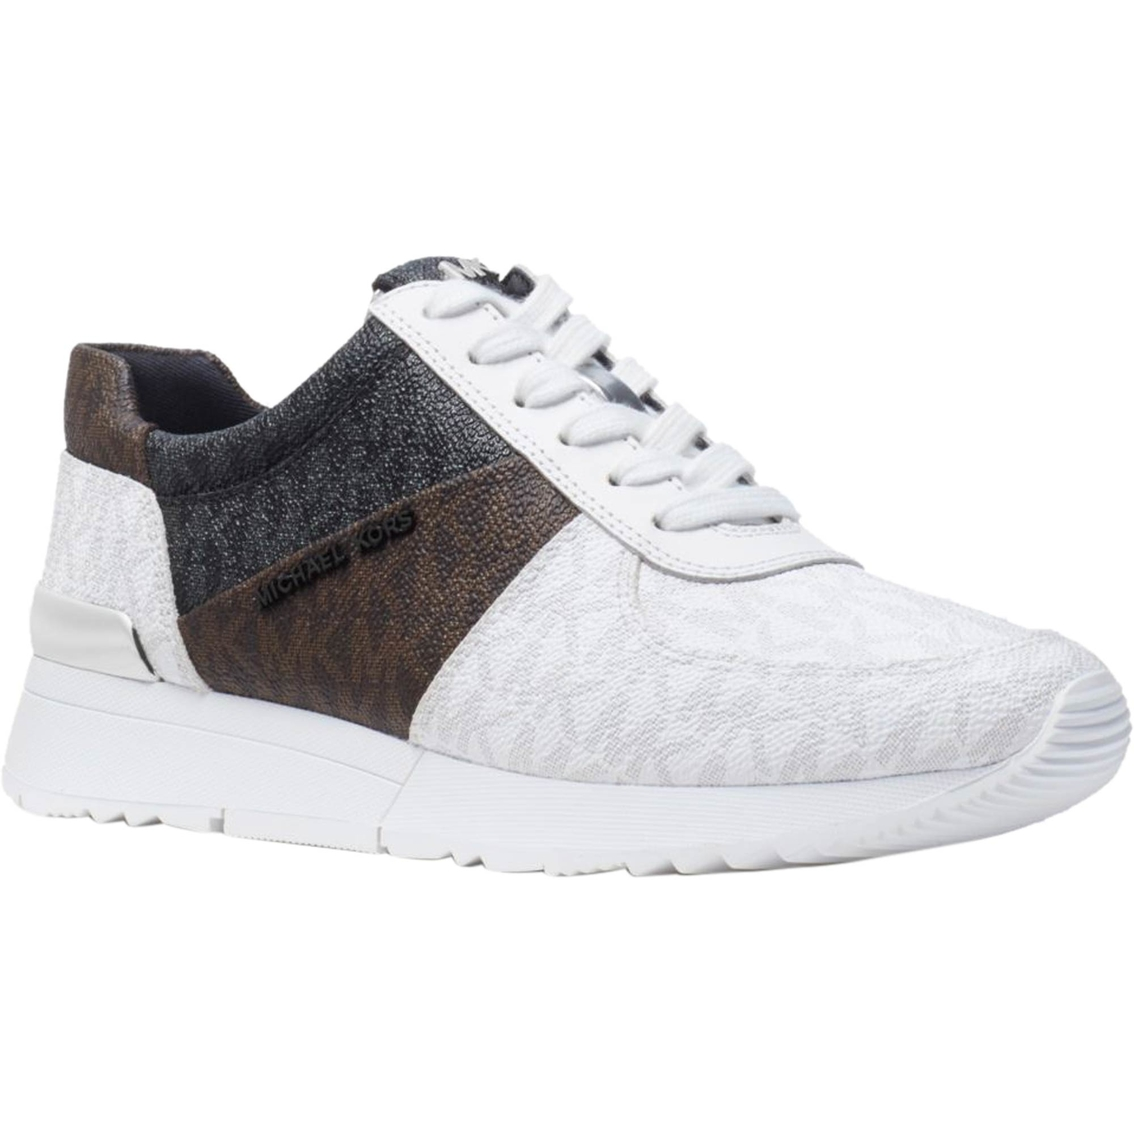 32ddf02d6a20c1 Michael Kors Women's Allie Trainer Shoes | Casuals | Shoes | Shop ...